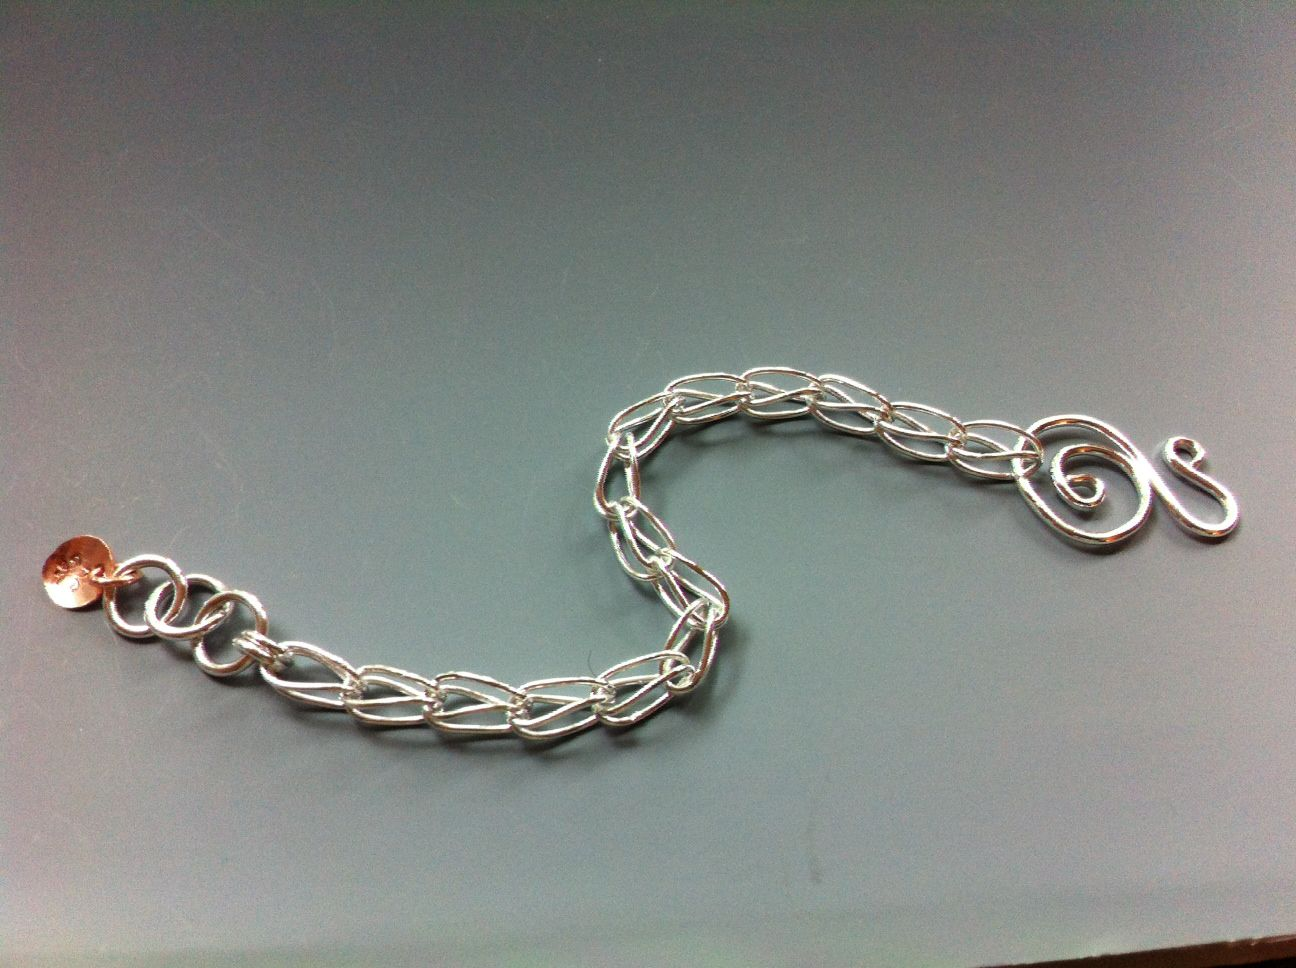 handmade jewelry, sterling silver, fabulous new design - ROMAN weave.  repin!  www.laurateague.com/bracelets.html